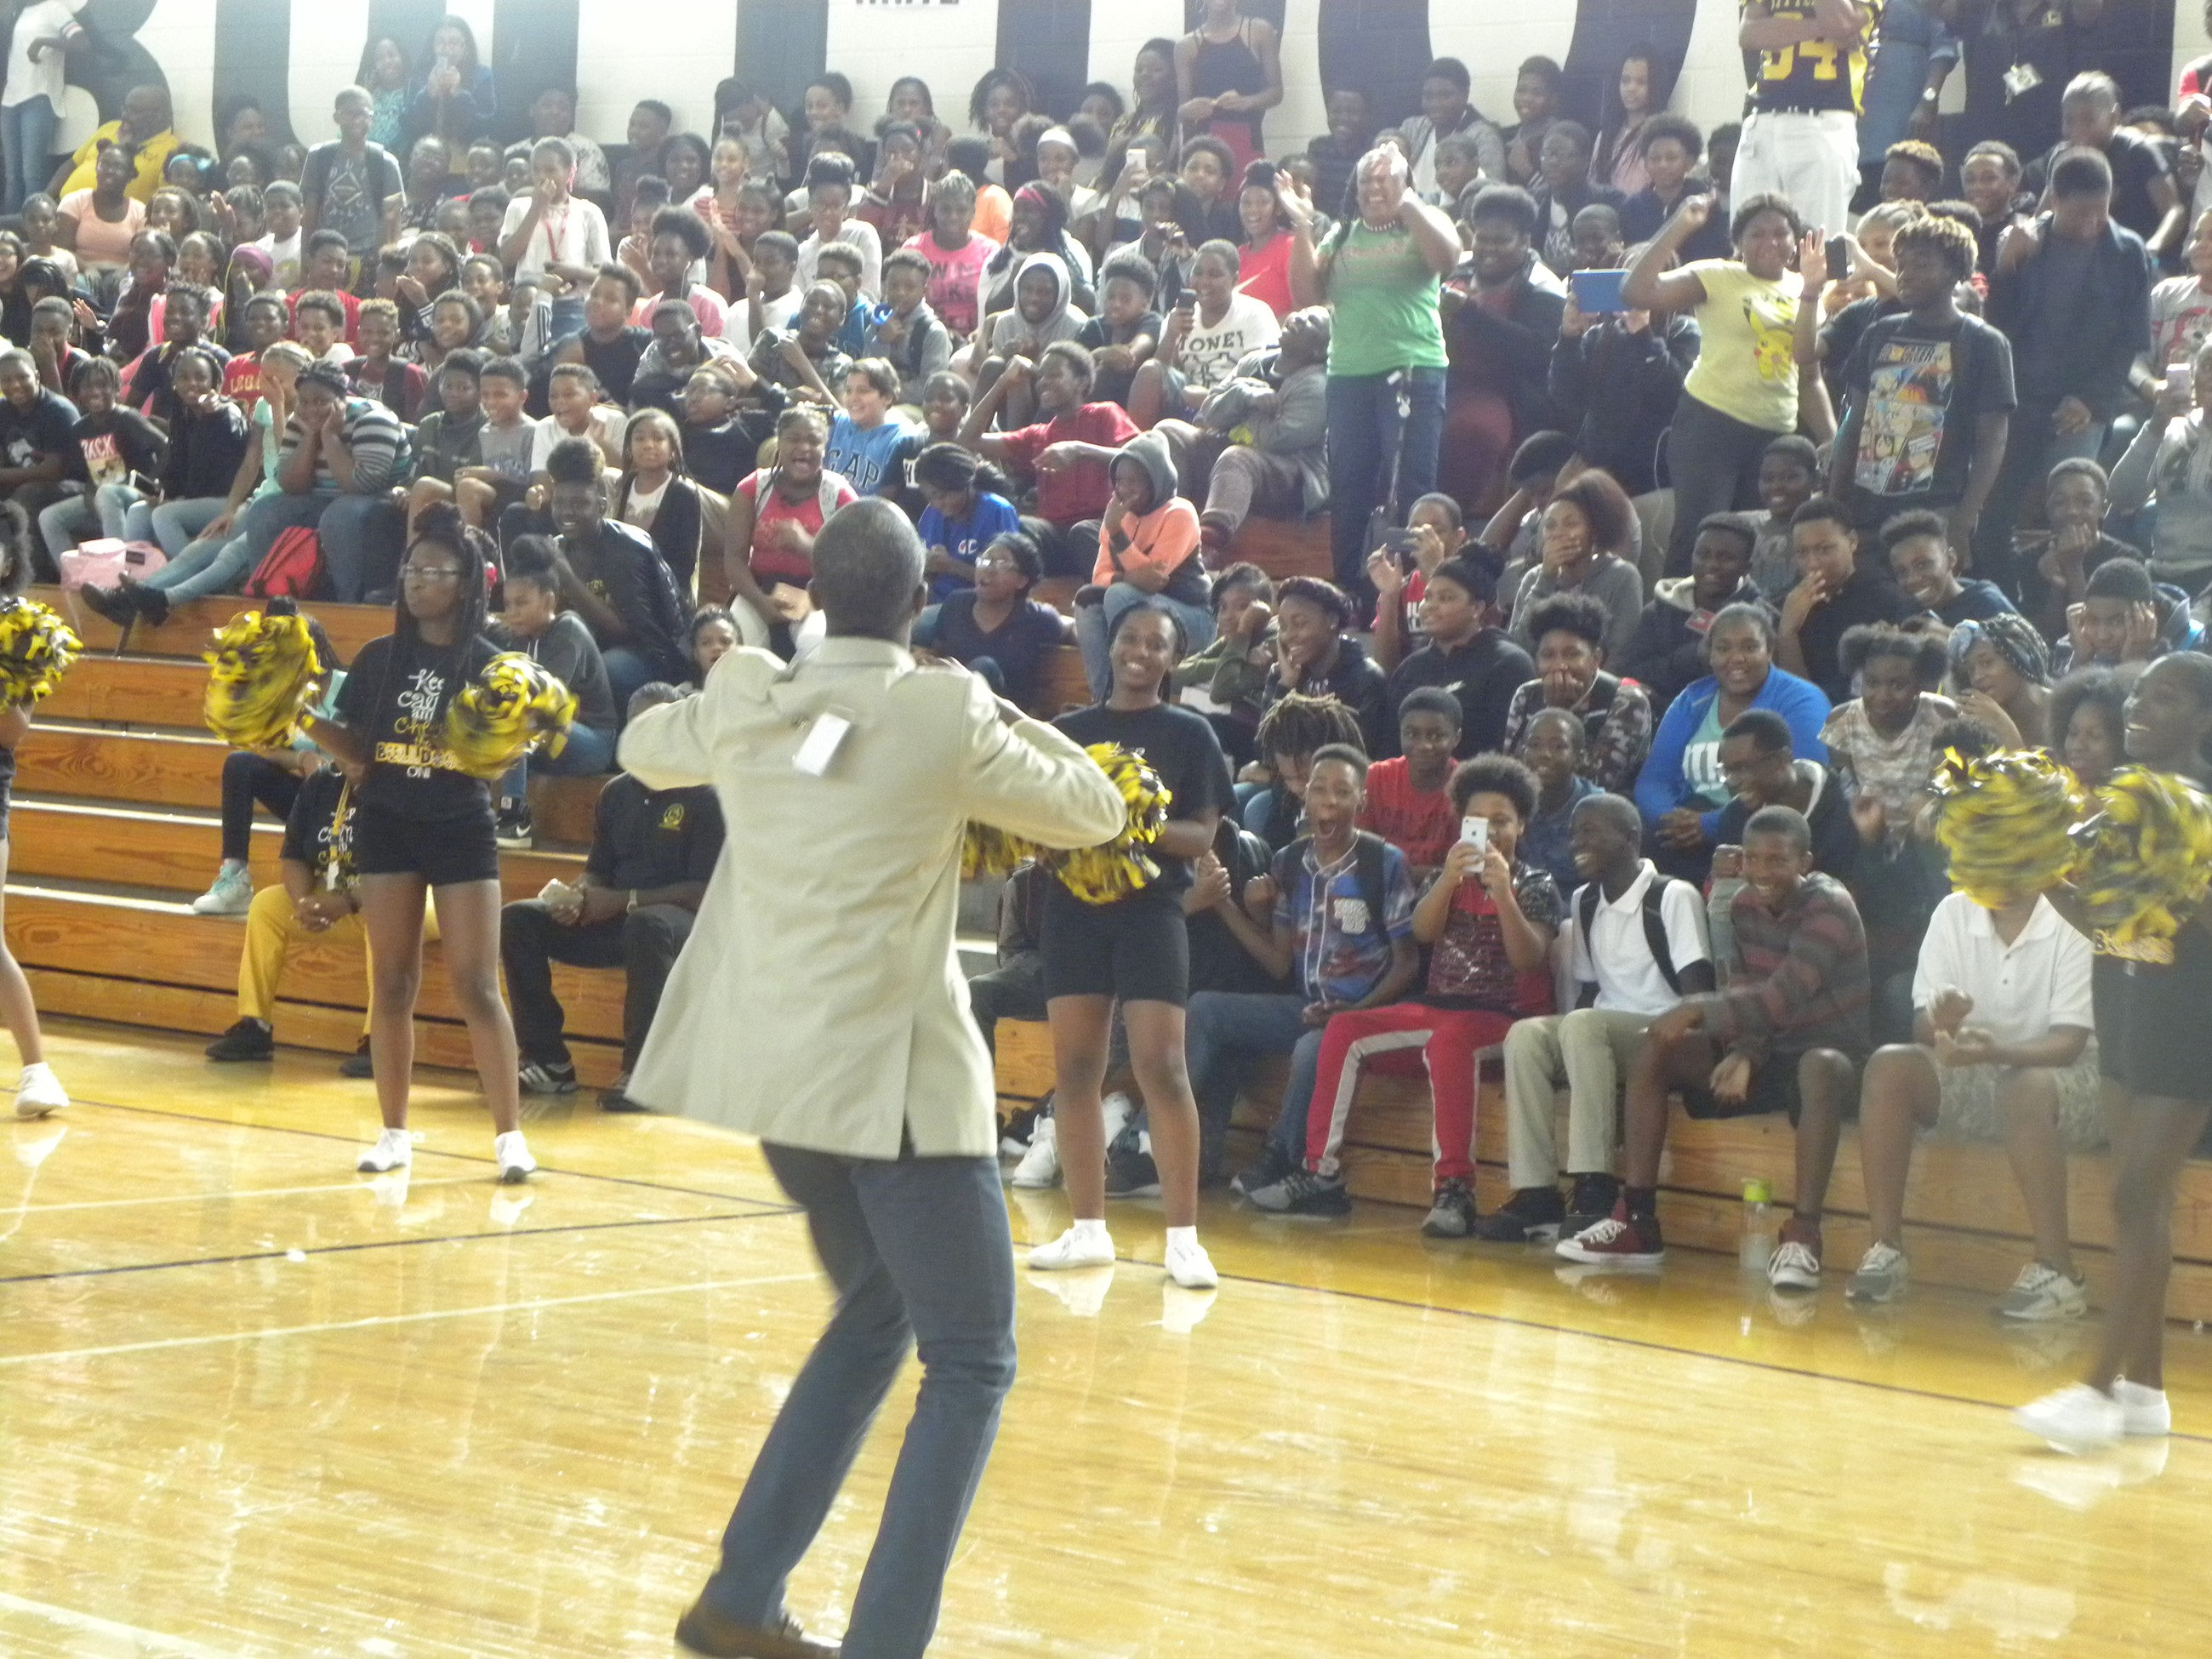 LMS teacher, Mr. Bland dancing at Pep Rally